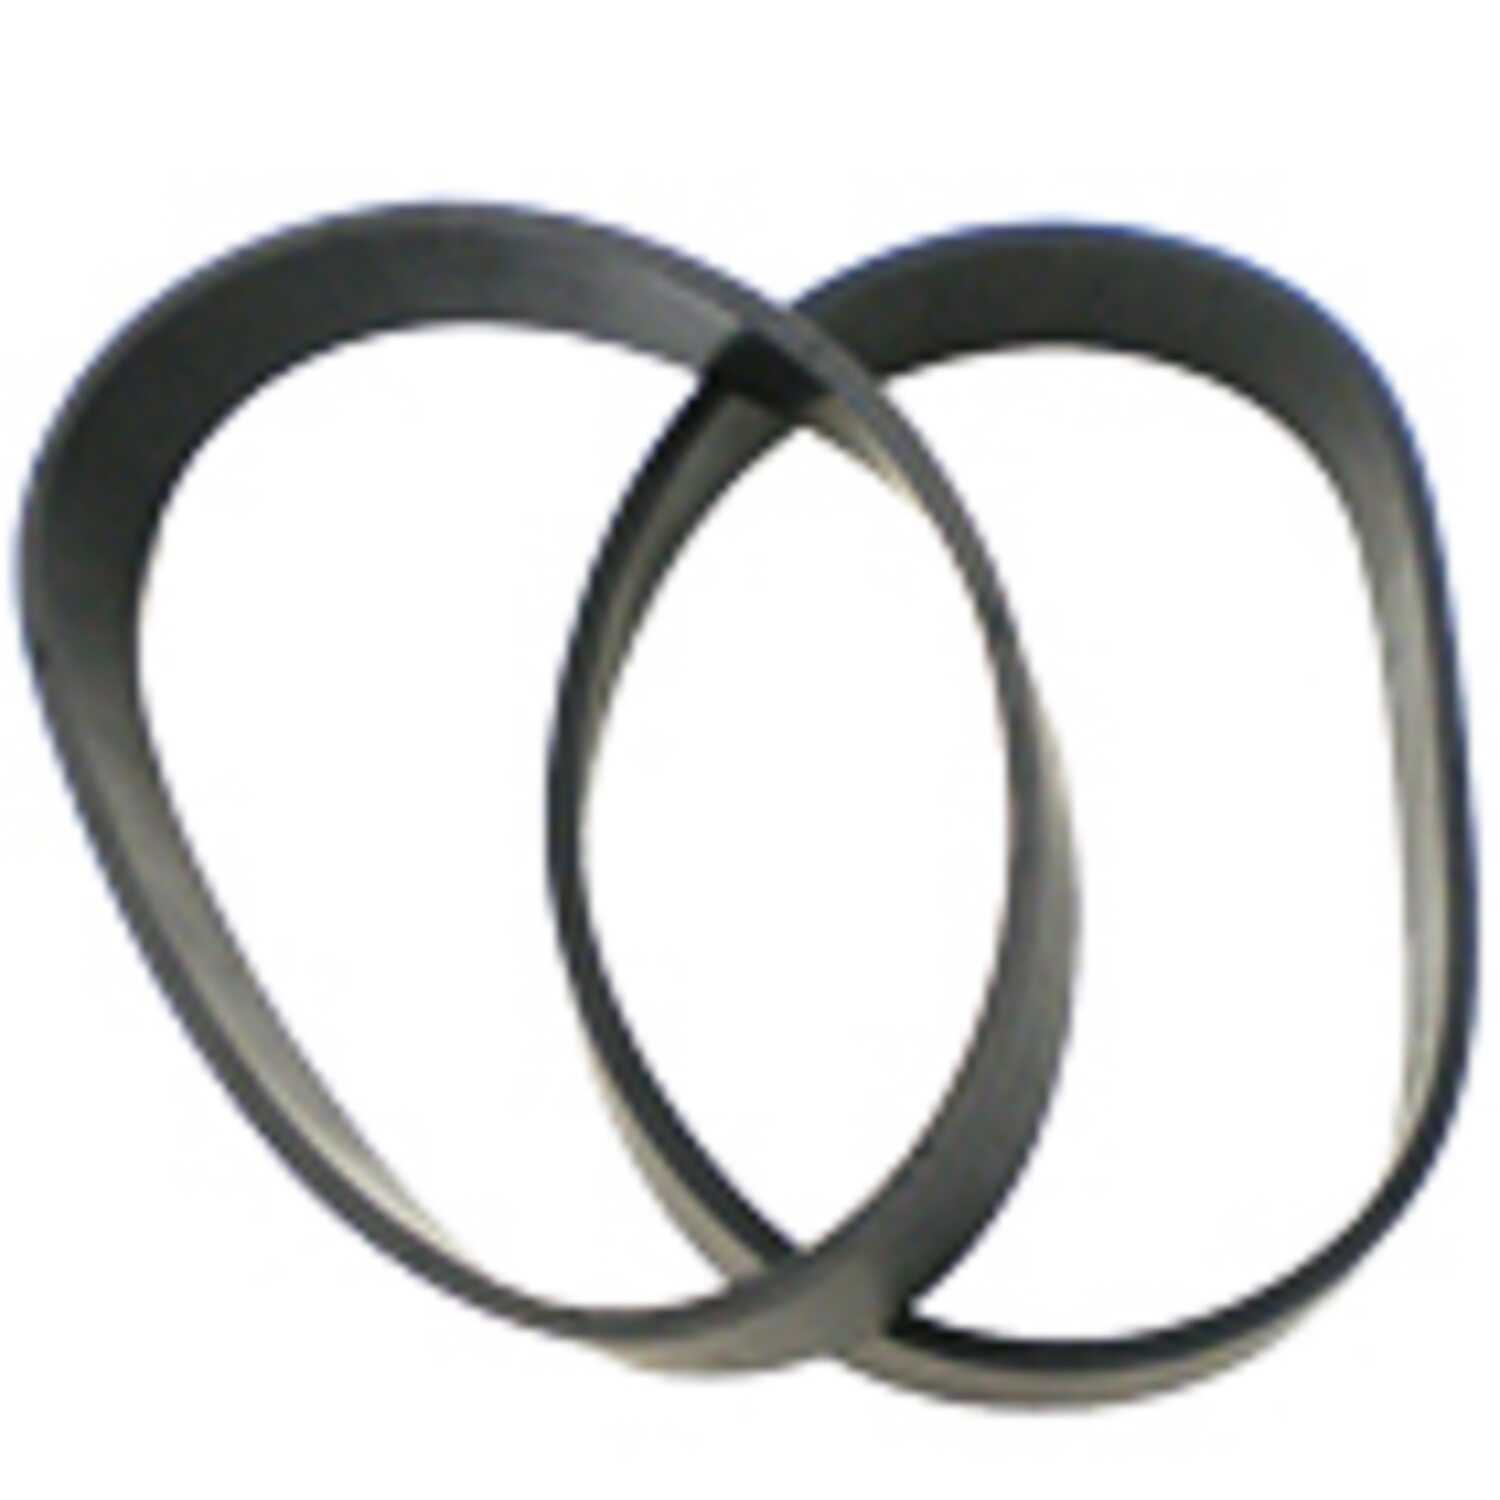 Bissell  Vacuum Belt  For Upright Vacuums 2 pk